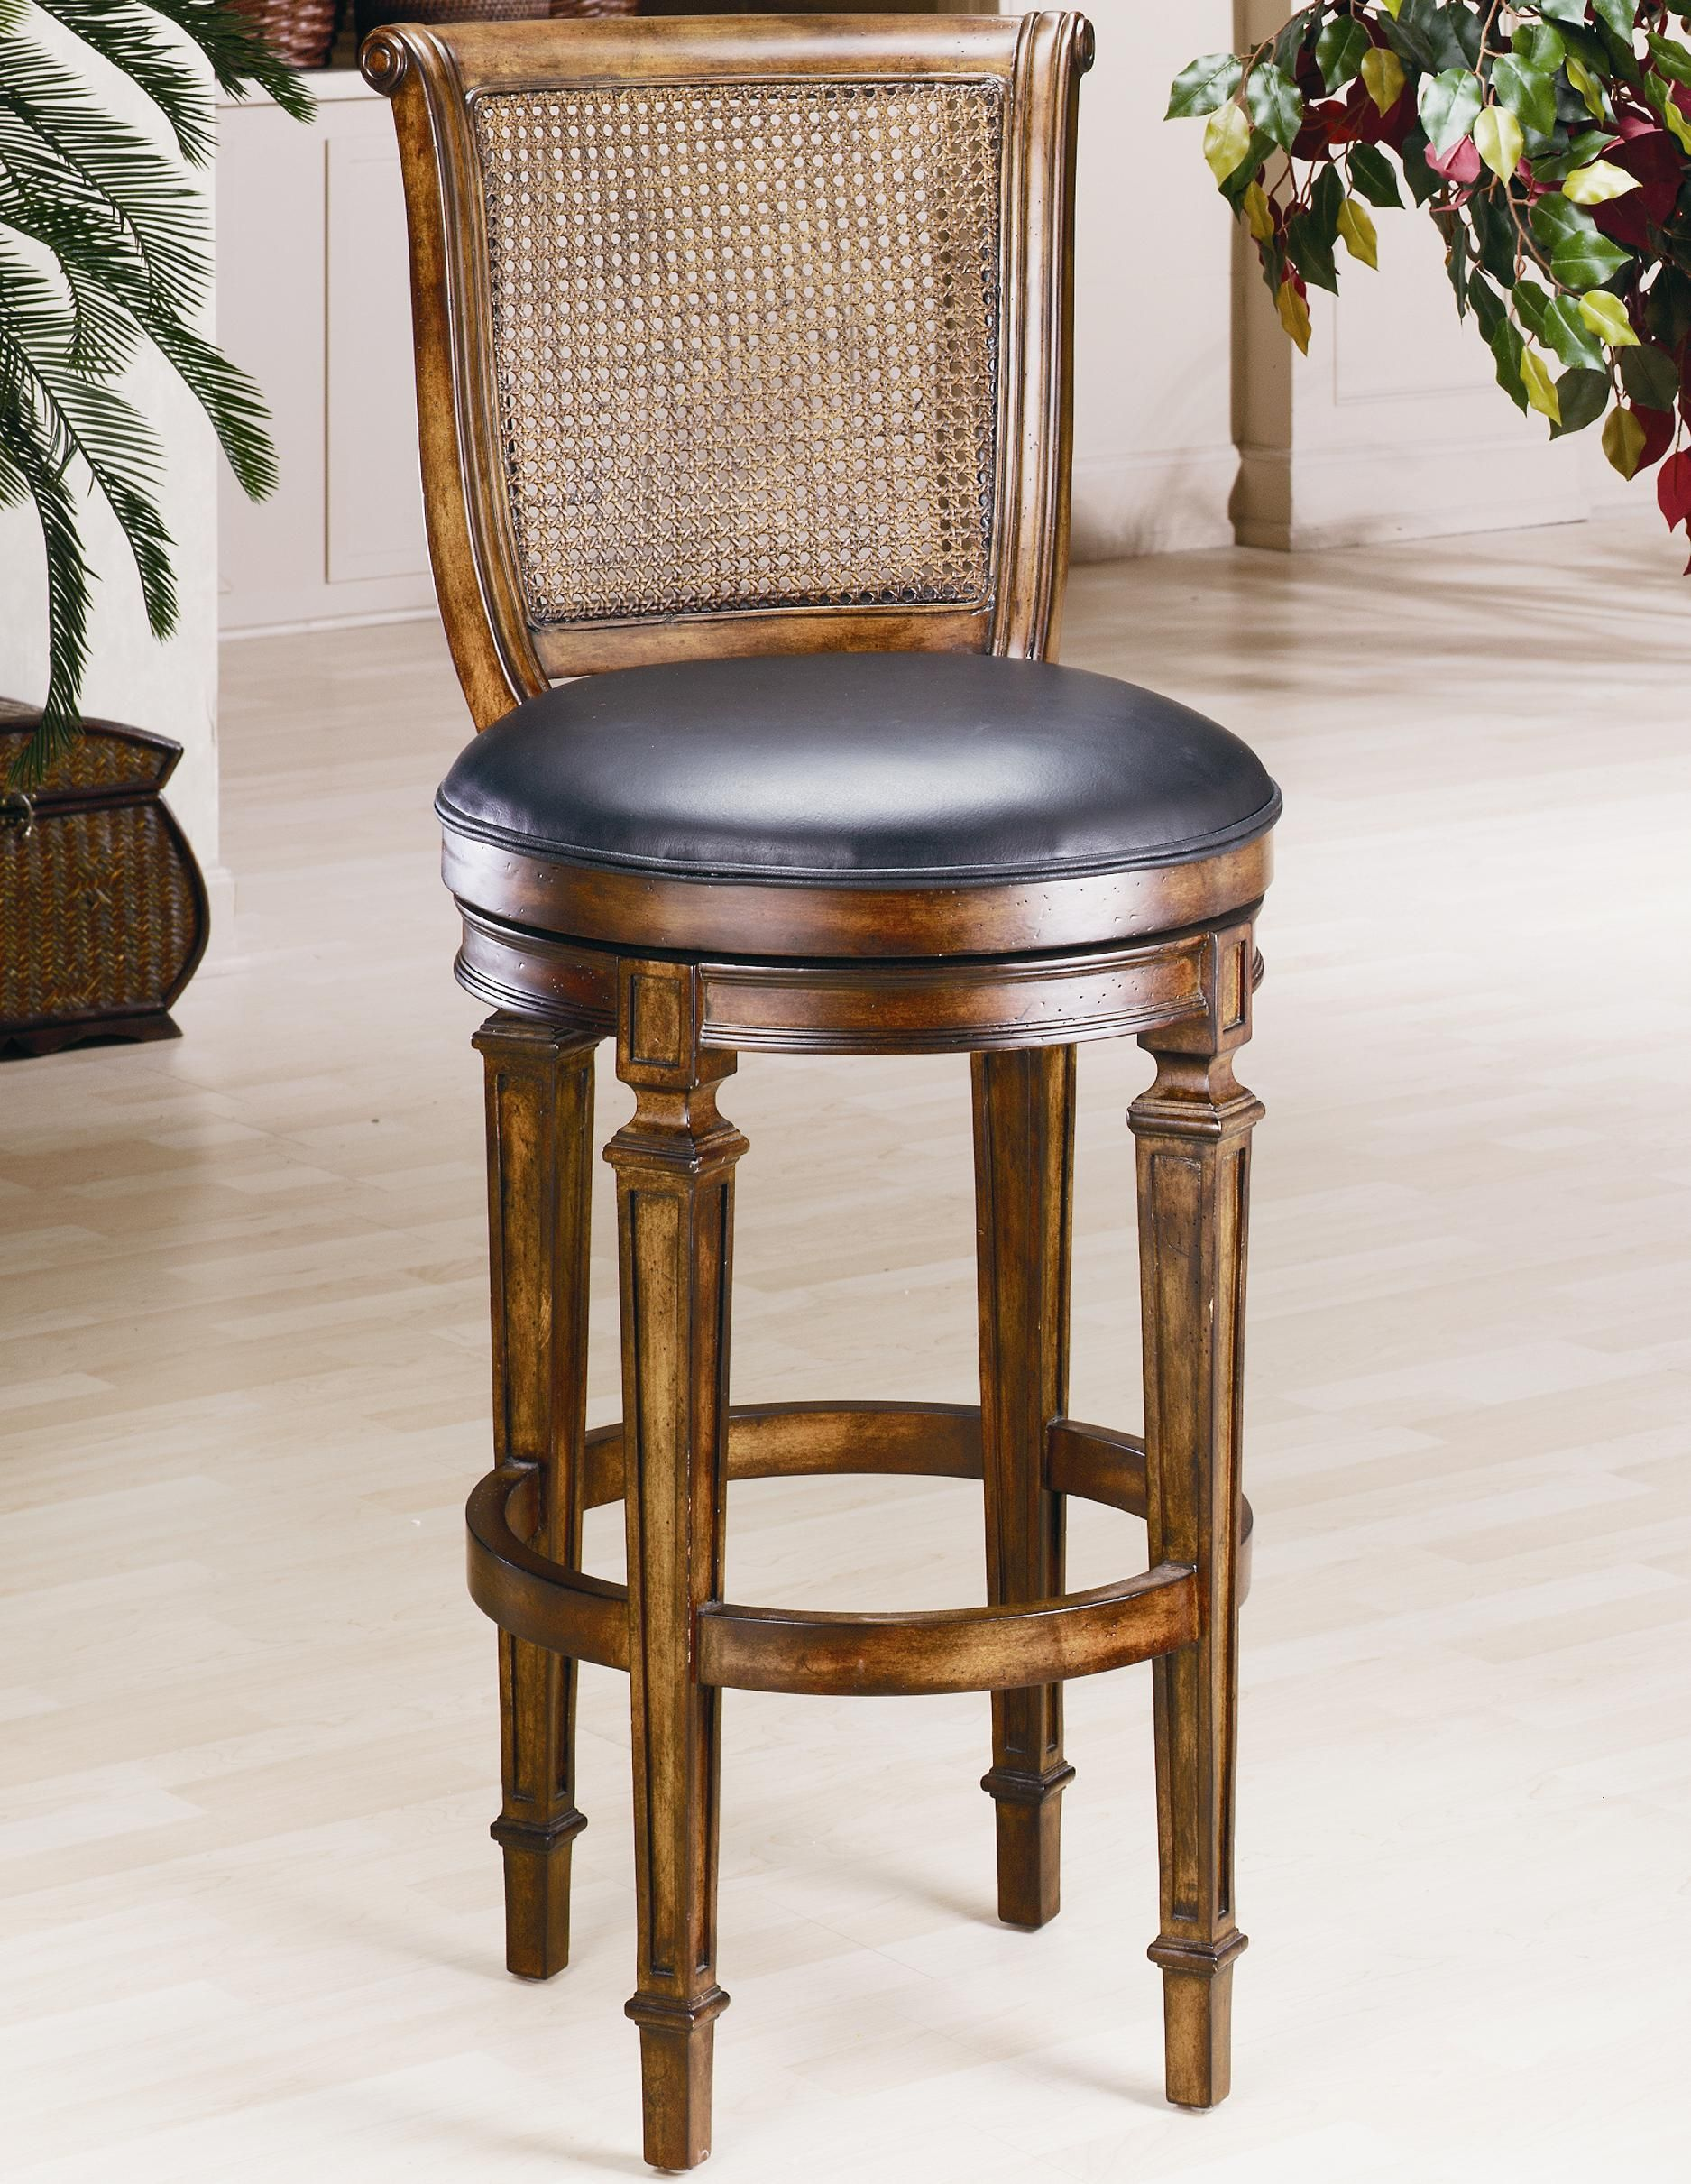 Bar Stool With Cane Back And Leather Seat Swivel Bar Stools